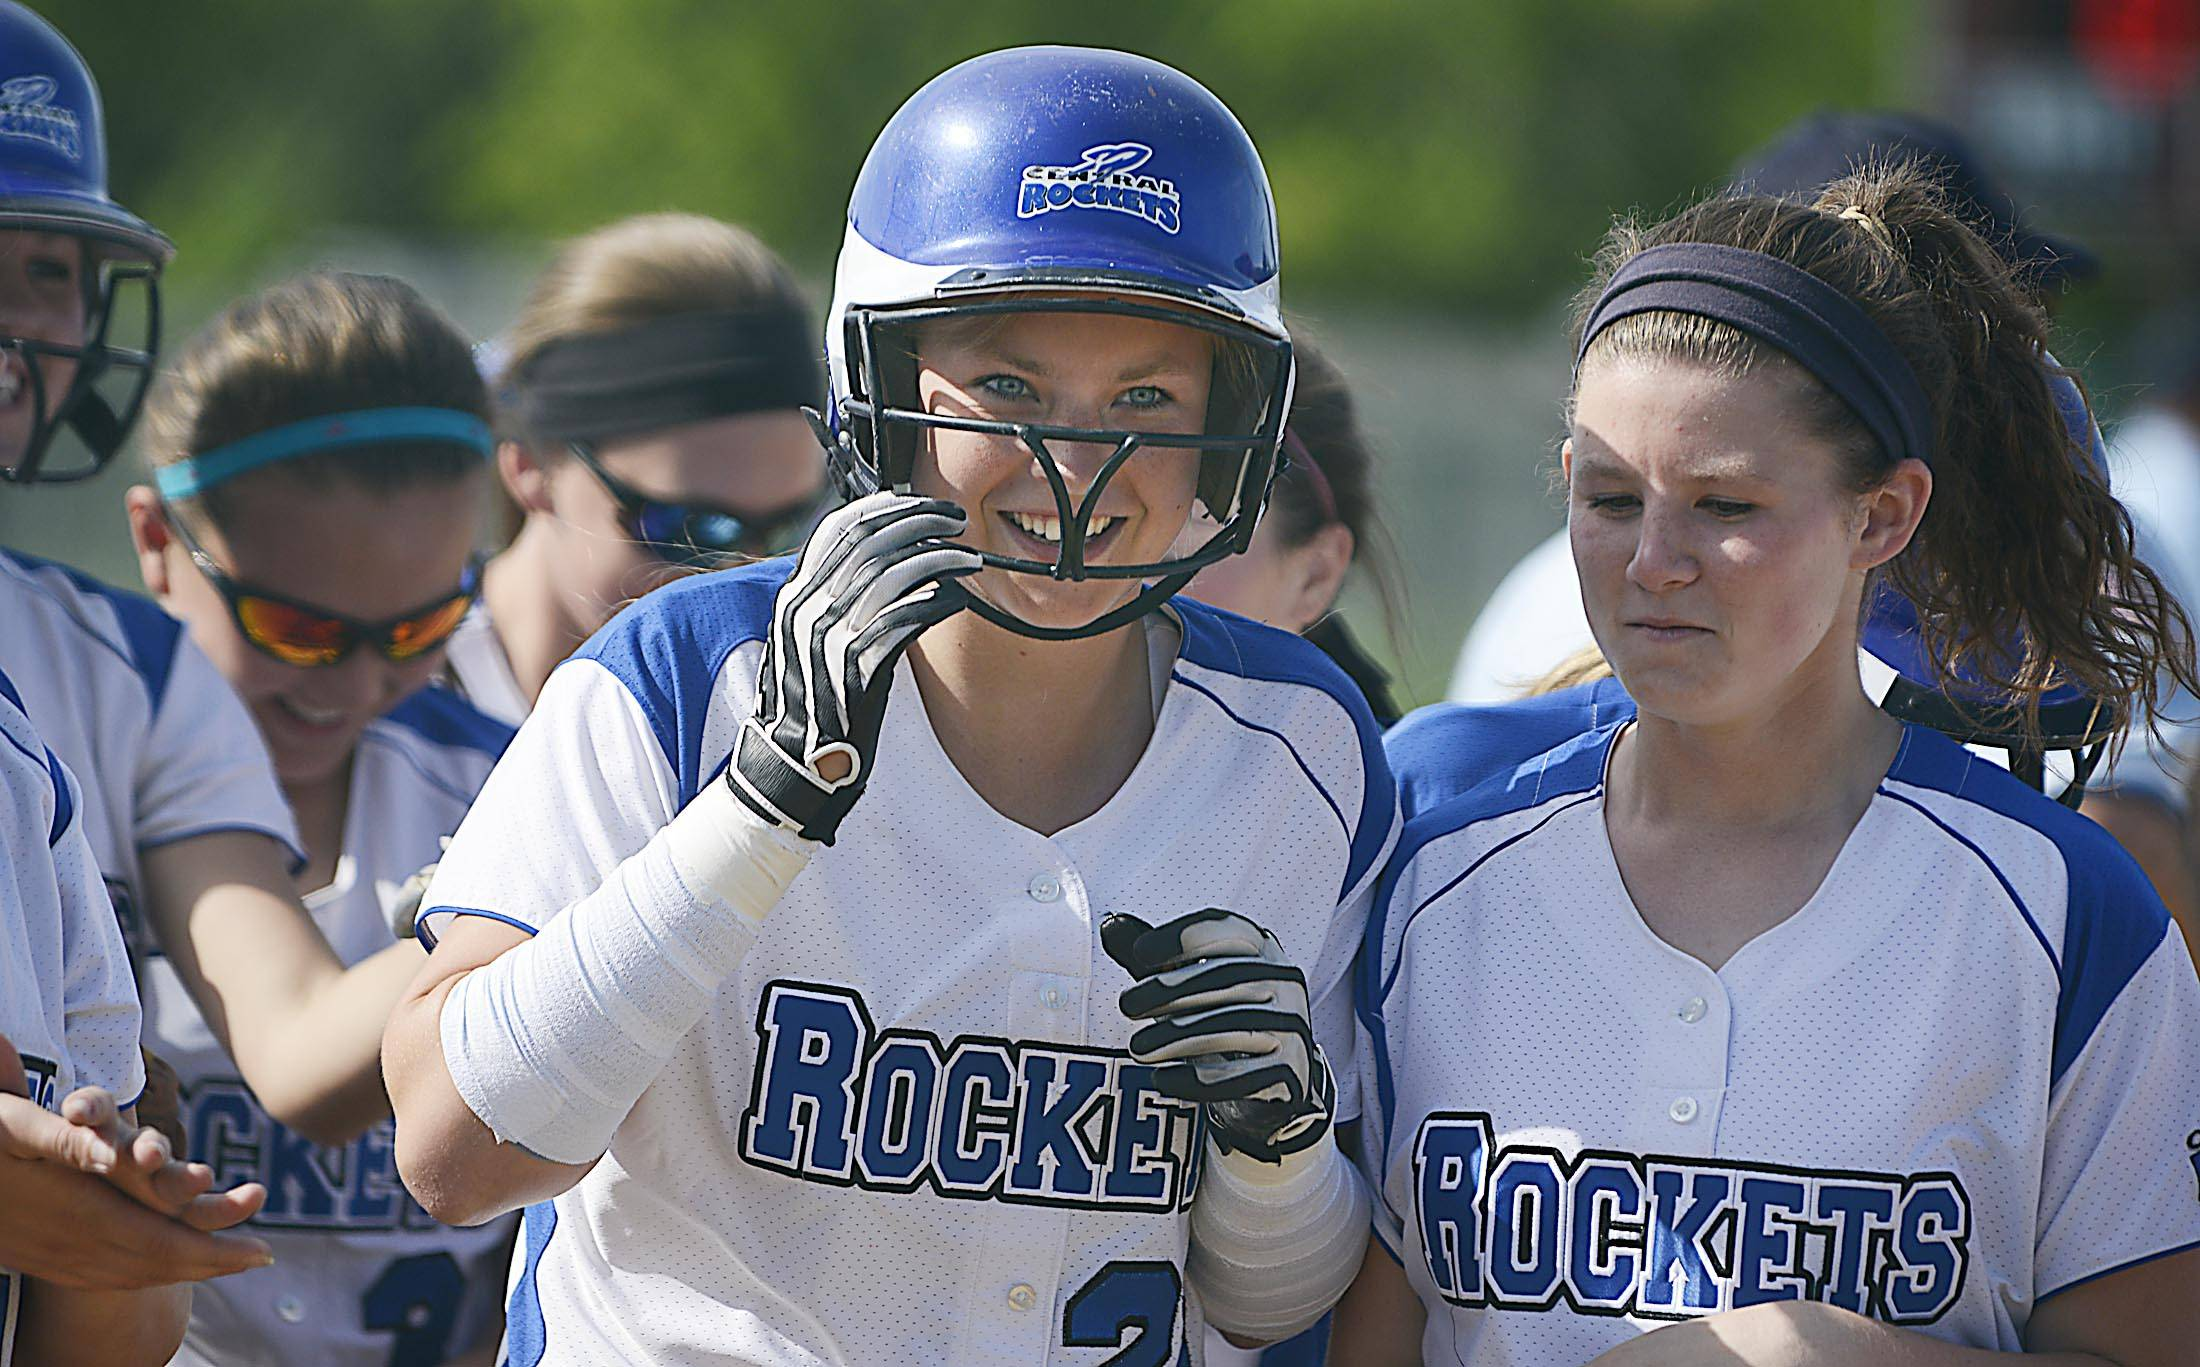 Burlington Central's Kassidy Gaylord laughs after her first inning home run against Sterling Tuesday in the Class 3A Marengo sectional semifinal game.